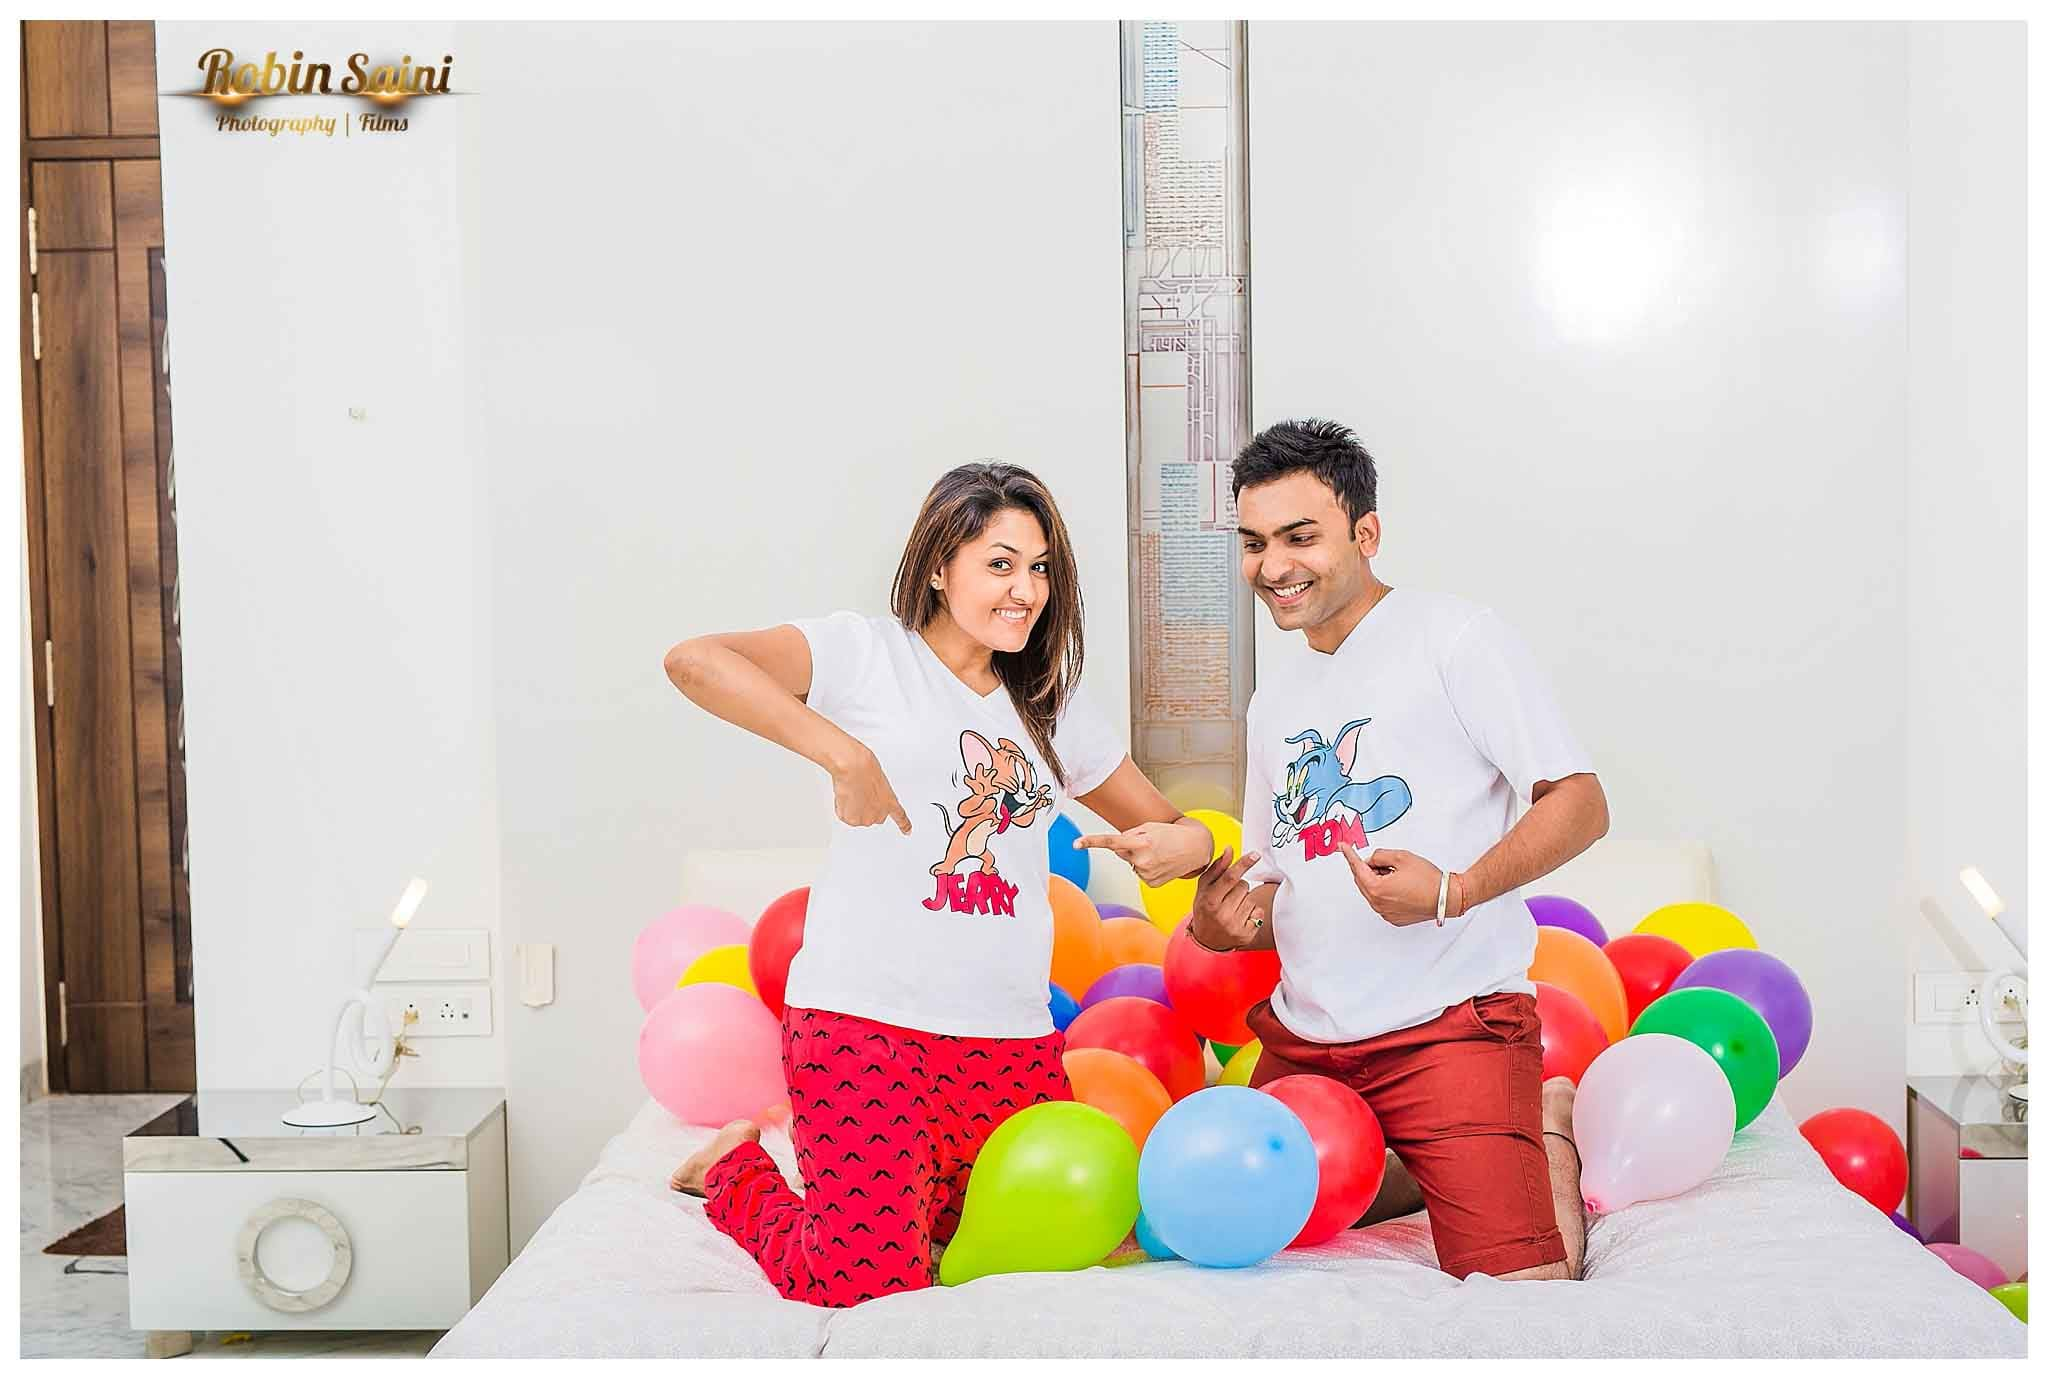 pre wedding masti:robin saini photography